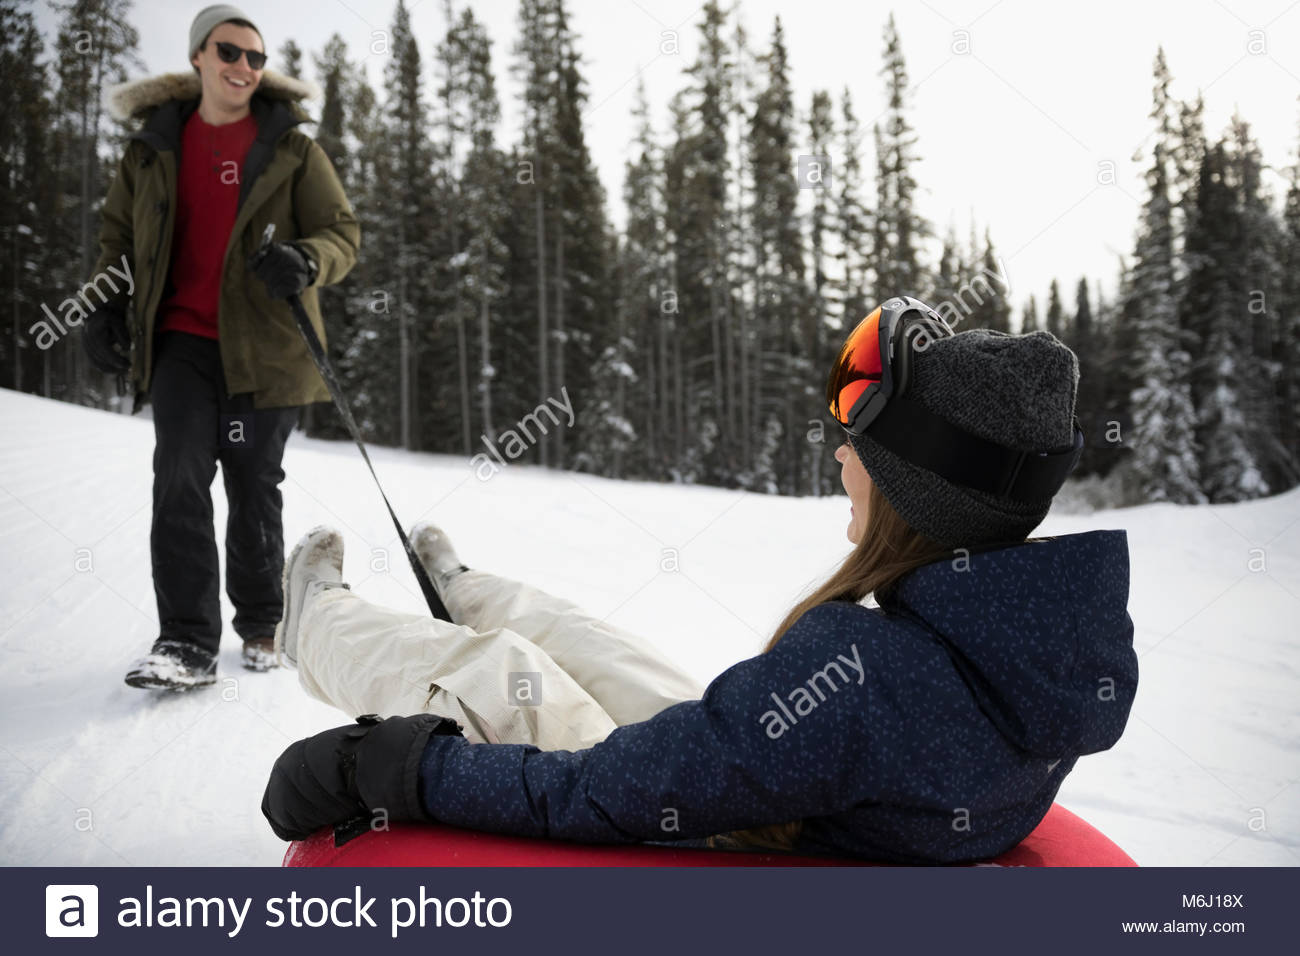 Boyfriend pulling girlfriend in inner tube in snow - Stock Image